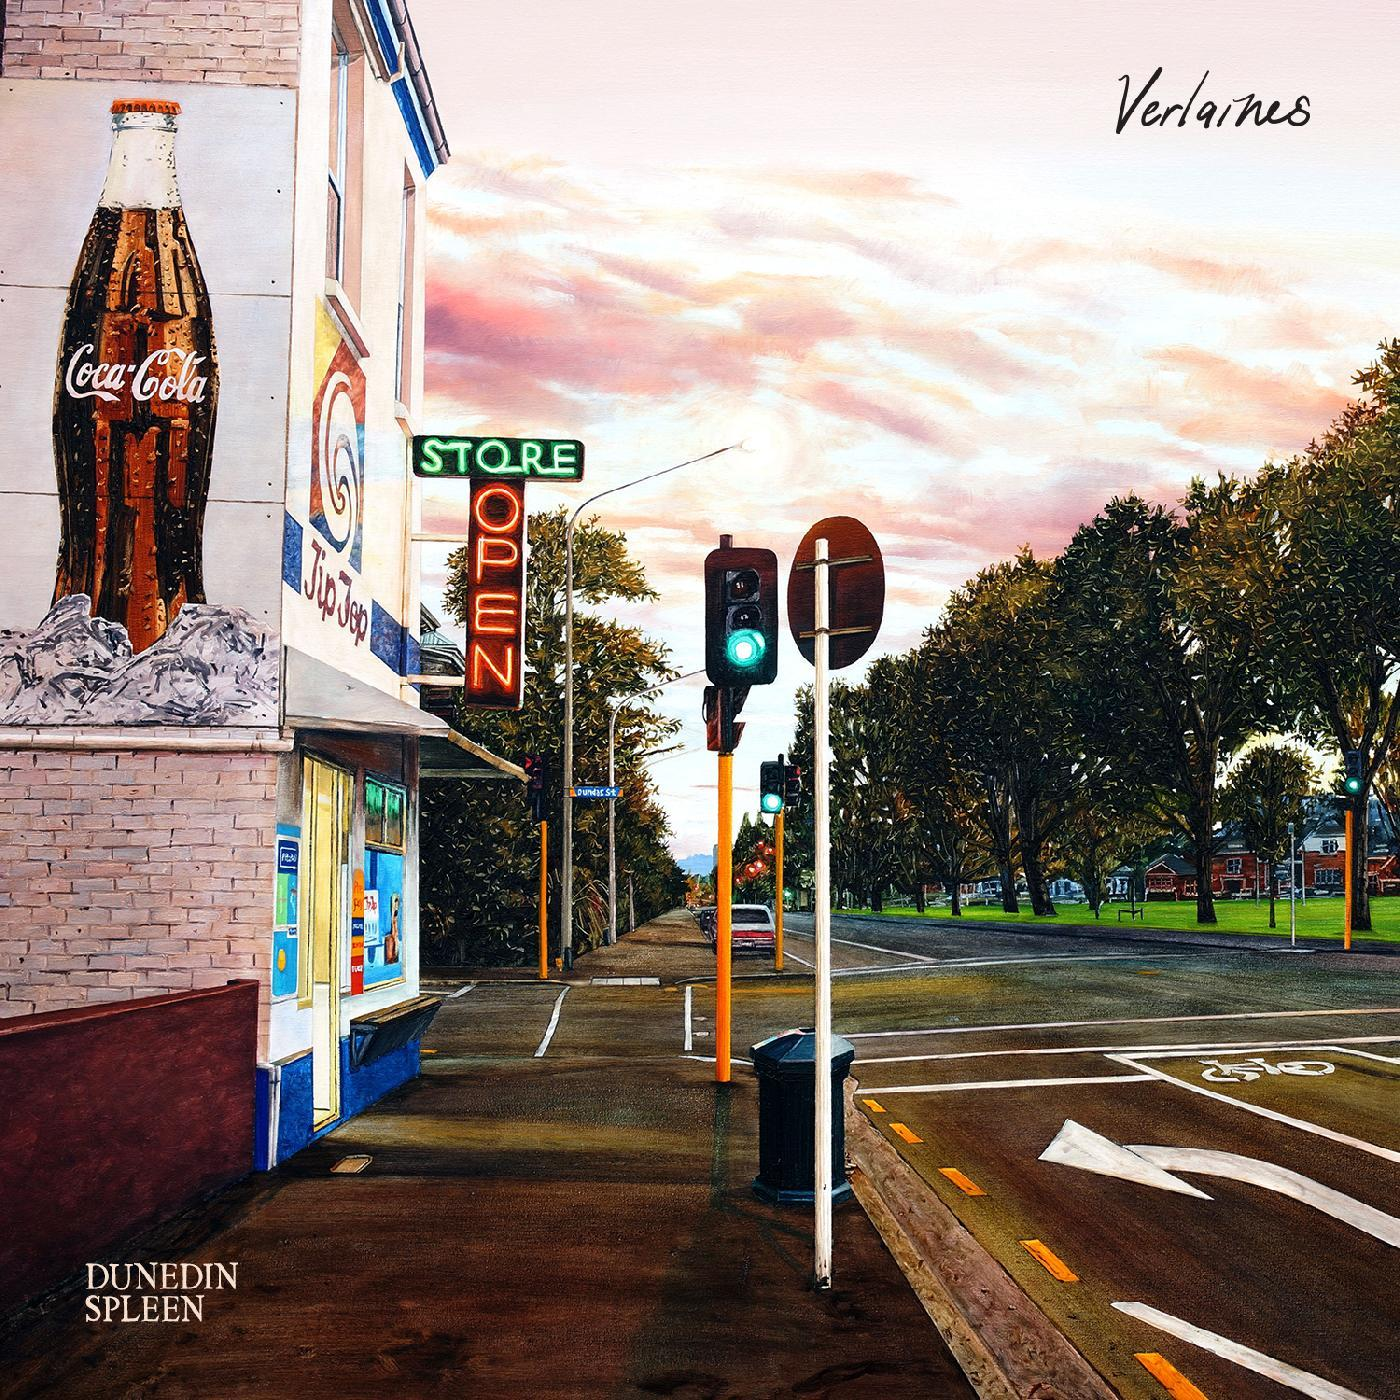 The Verlaines - Dunedin Spleen [RSD Drops Oct 2020]